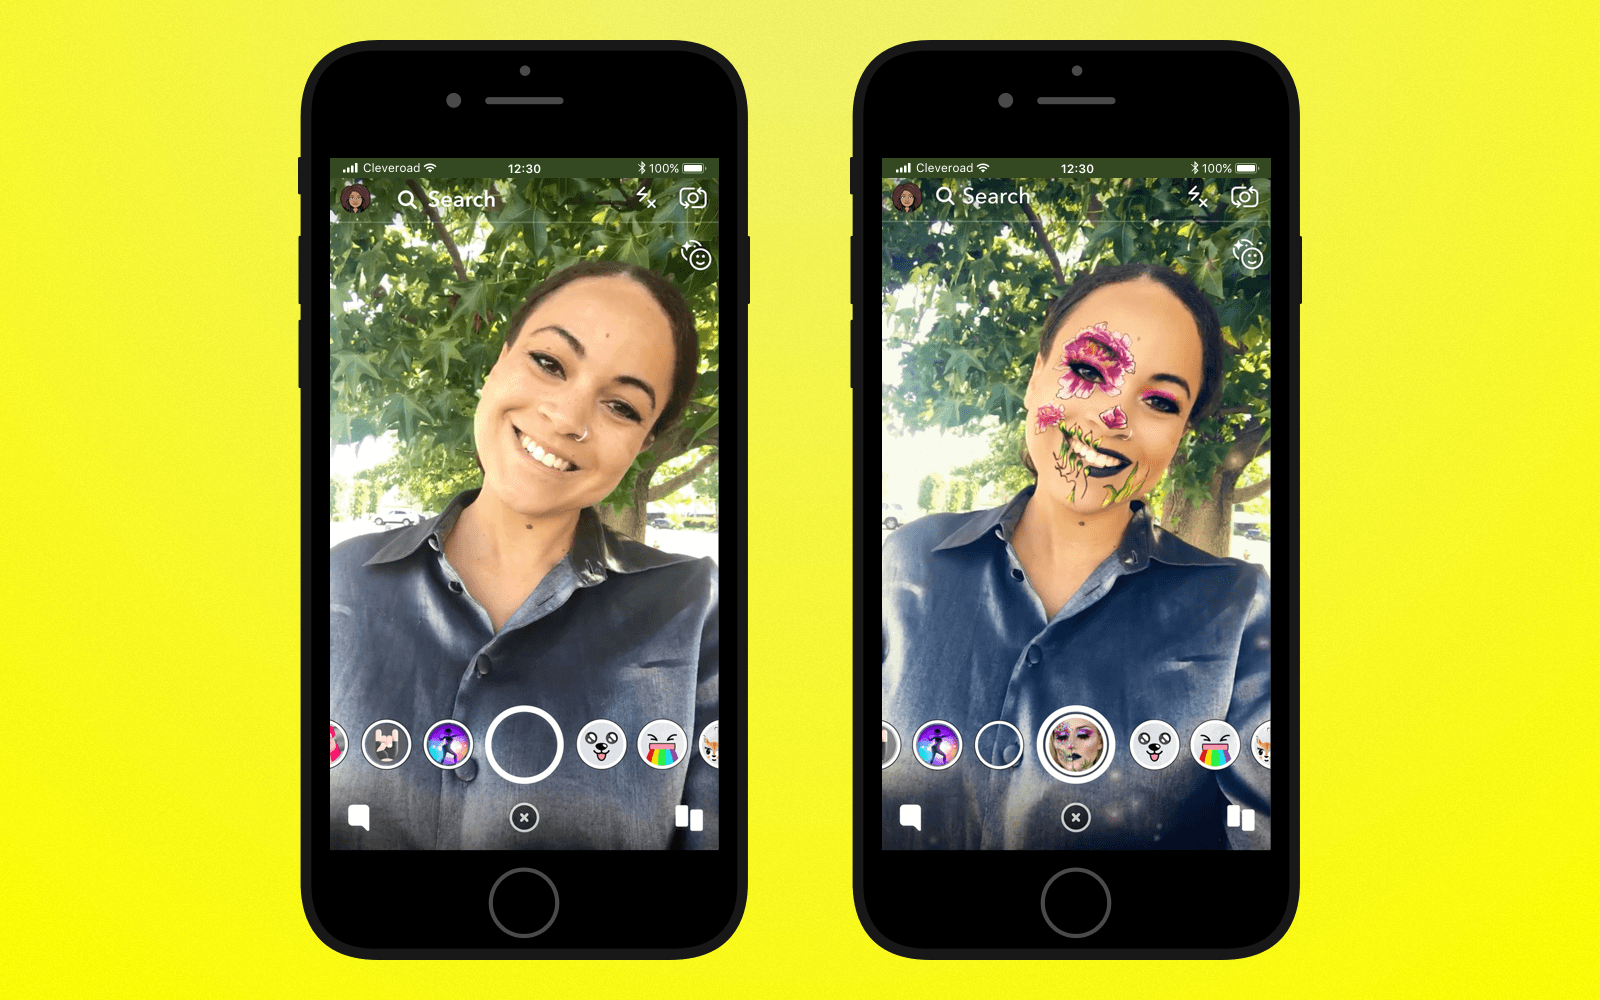 Add lenses feature to create an app like Snapchat